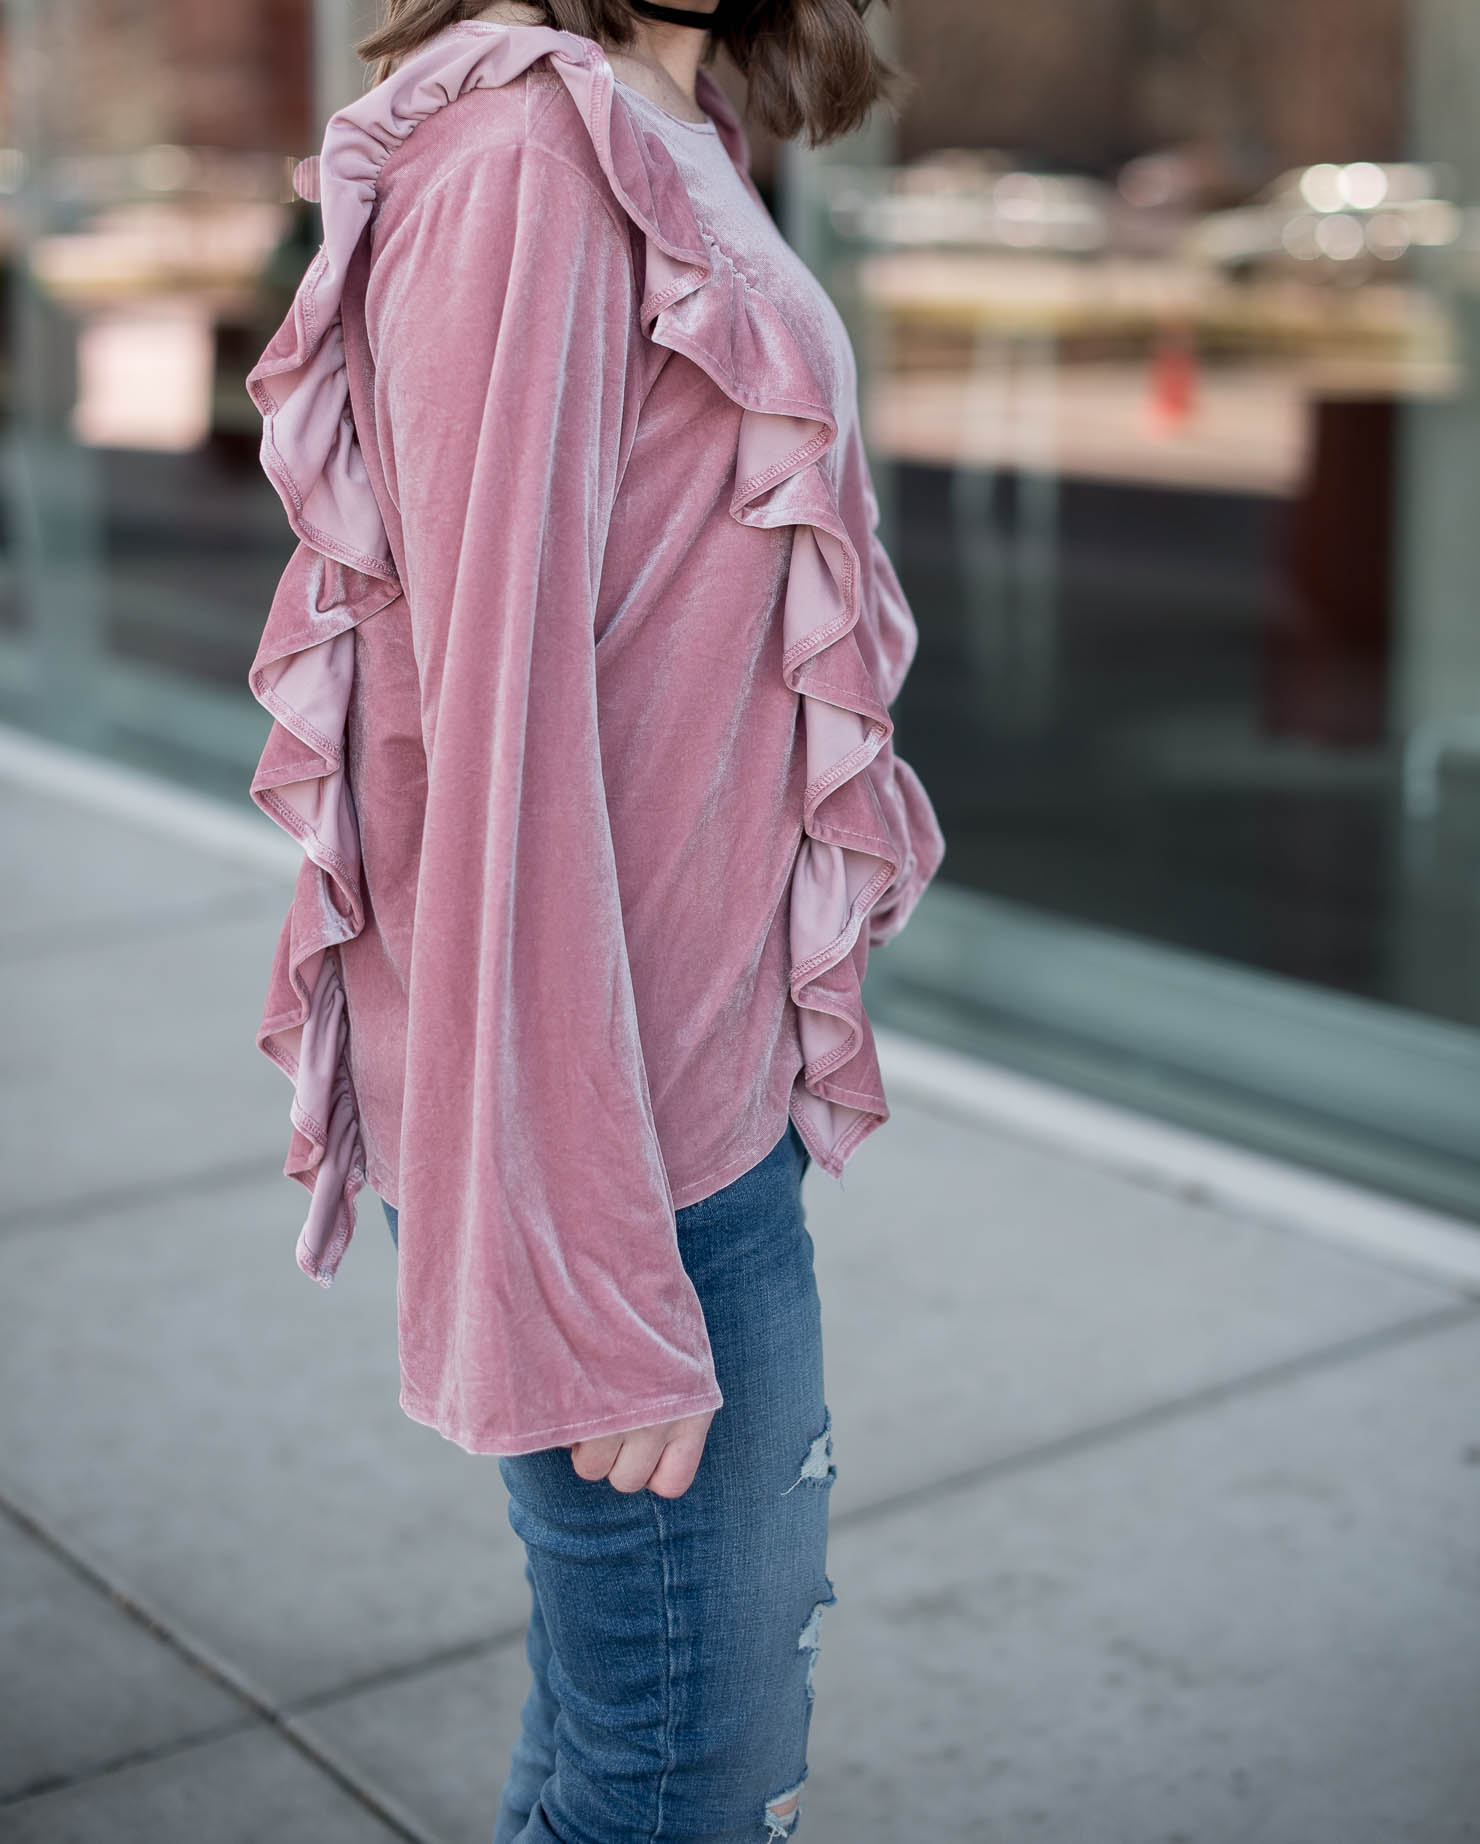 shein-pink-ruffles-velvet-top-blush-scalloped-block-heel-pumps-chloe-dupe-spring-style-spring-trends-2017-updated